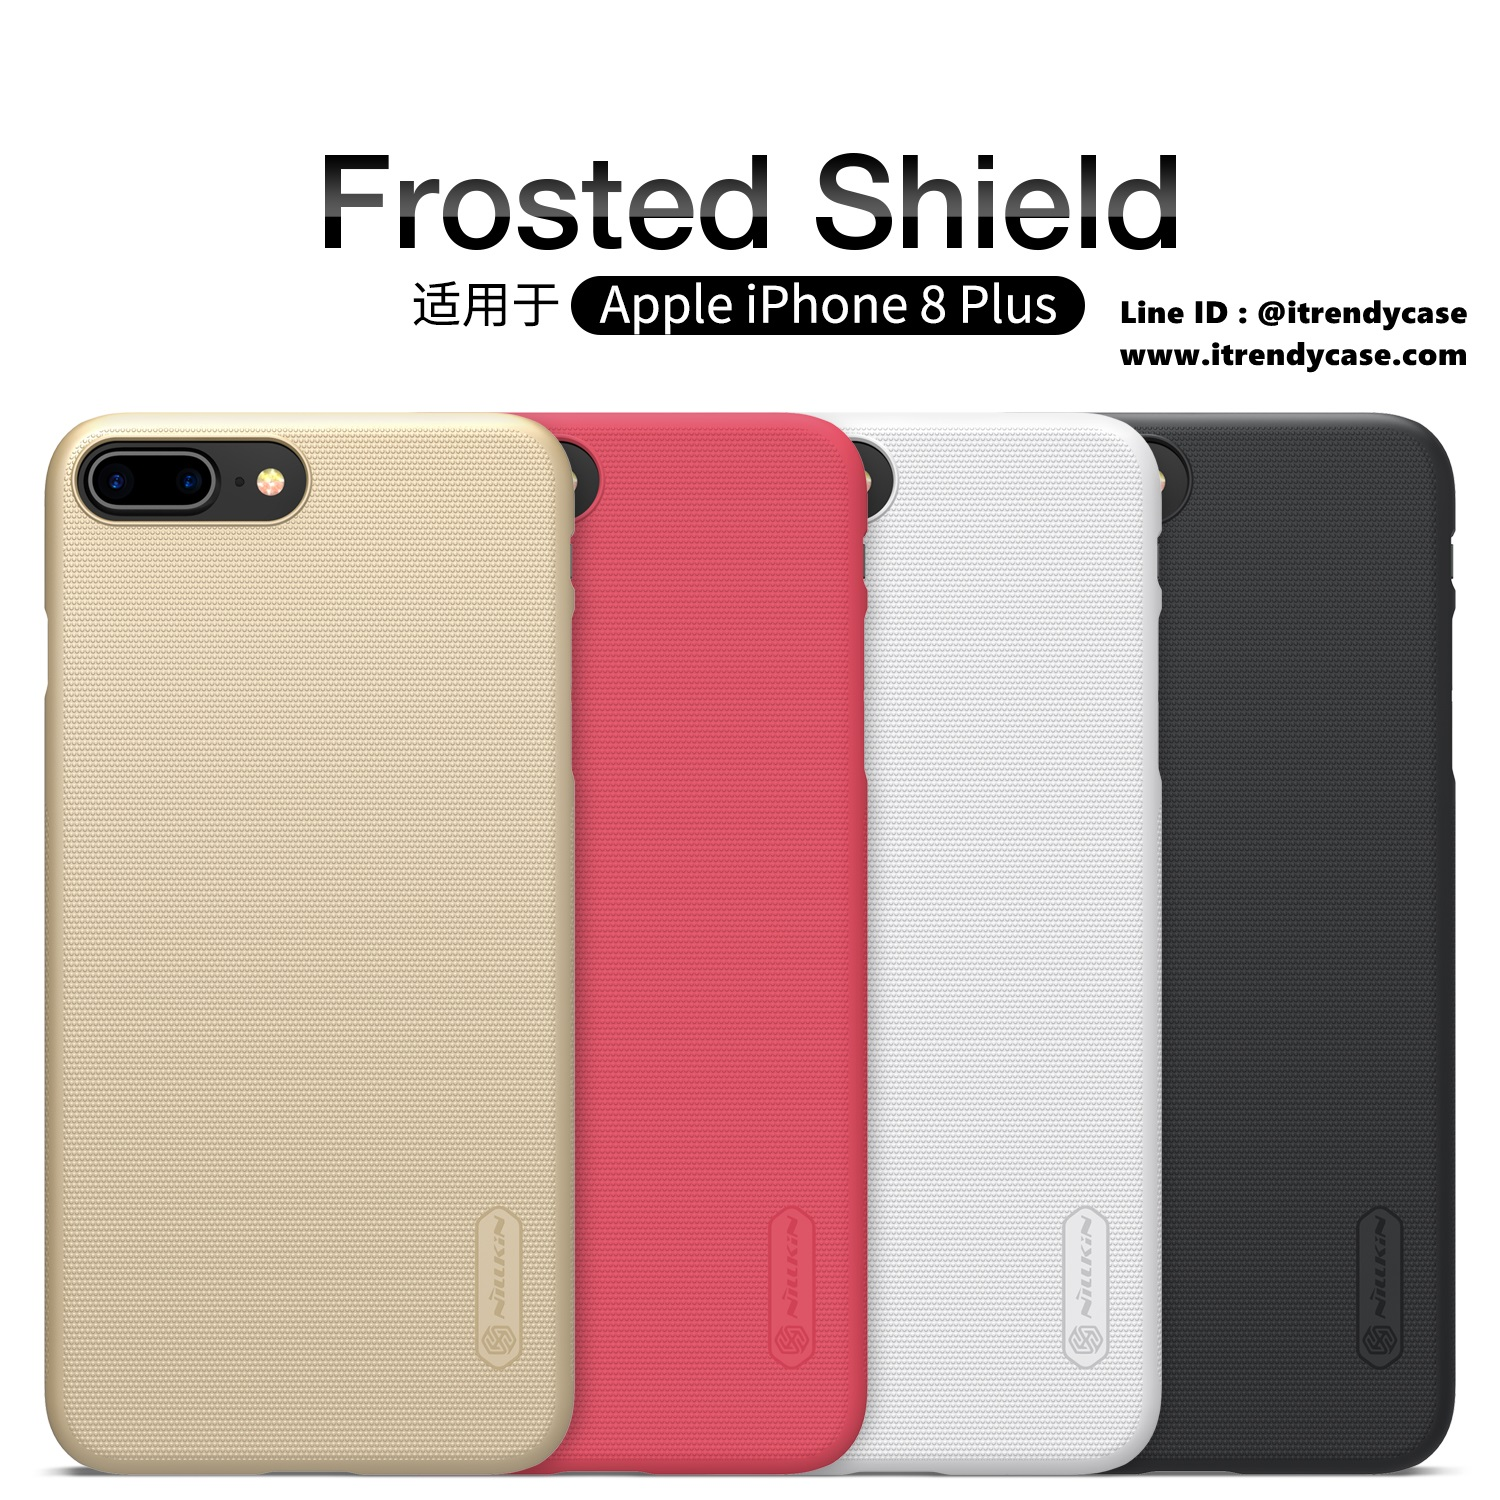 iPhone 8 Plus / 7 Plus - เคสหลัง Nillkin Super Frosted Shield แท้